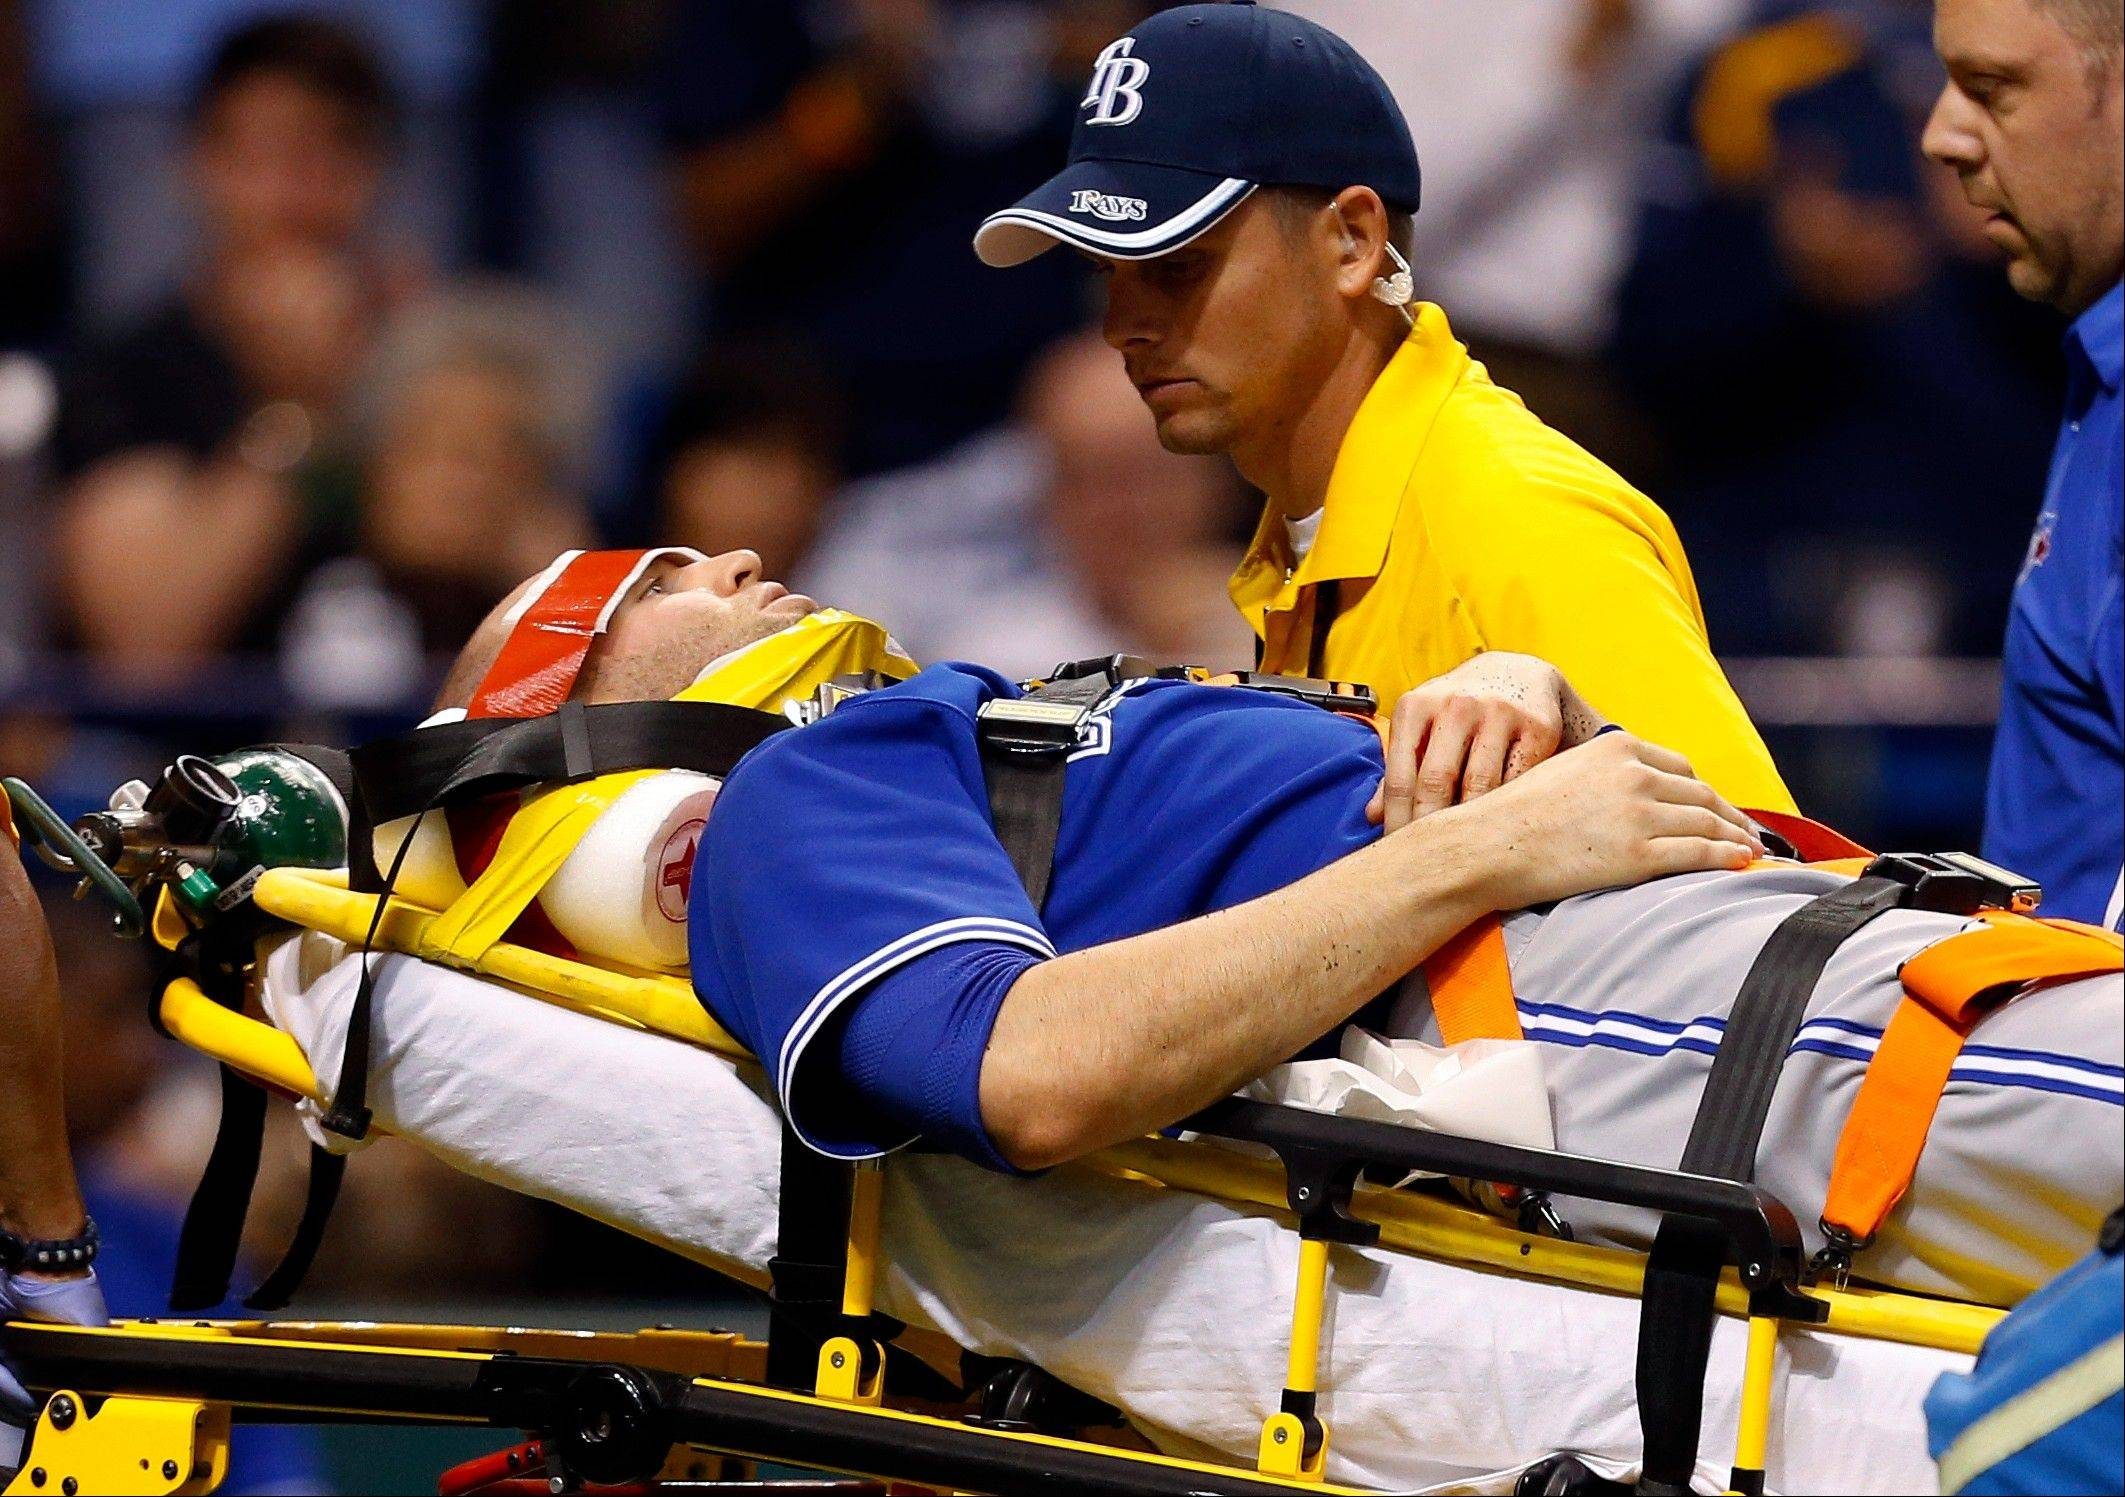 Toronto Blue Jays' J.A. Happ is attended to by medical personnel as he is taken off the field on a stretcher after being hit in the head by a line drive by Tampa Bay Rays' Desmond Jennings during the second inning of a baseball game Tuesday, May 7, 2013, in St. Petersburg, Fla.